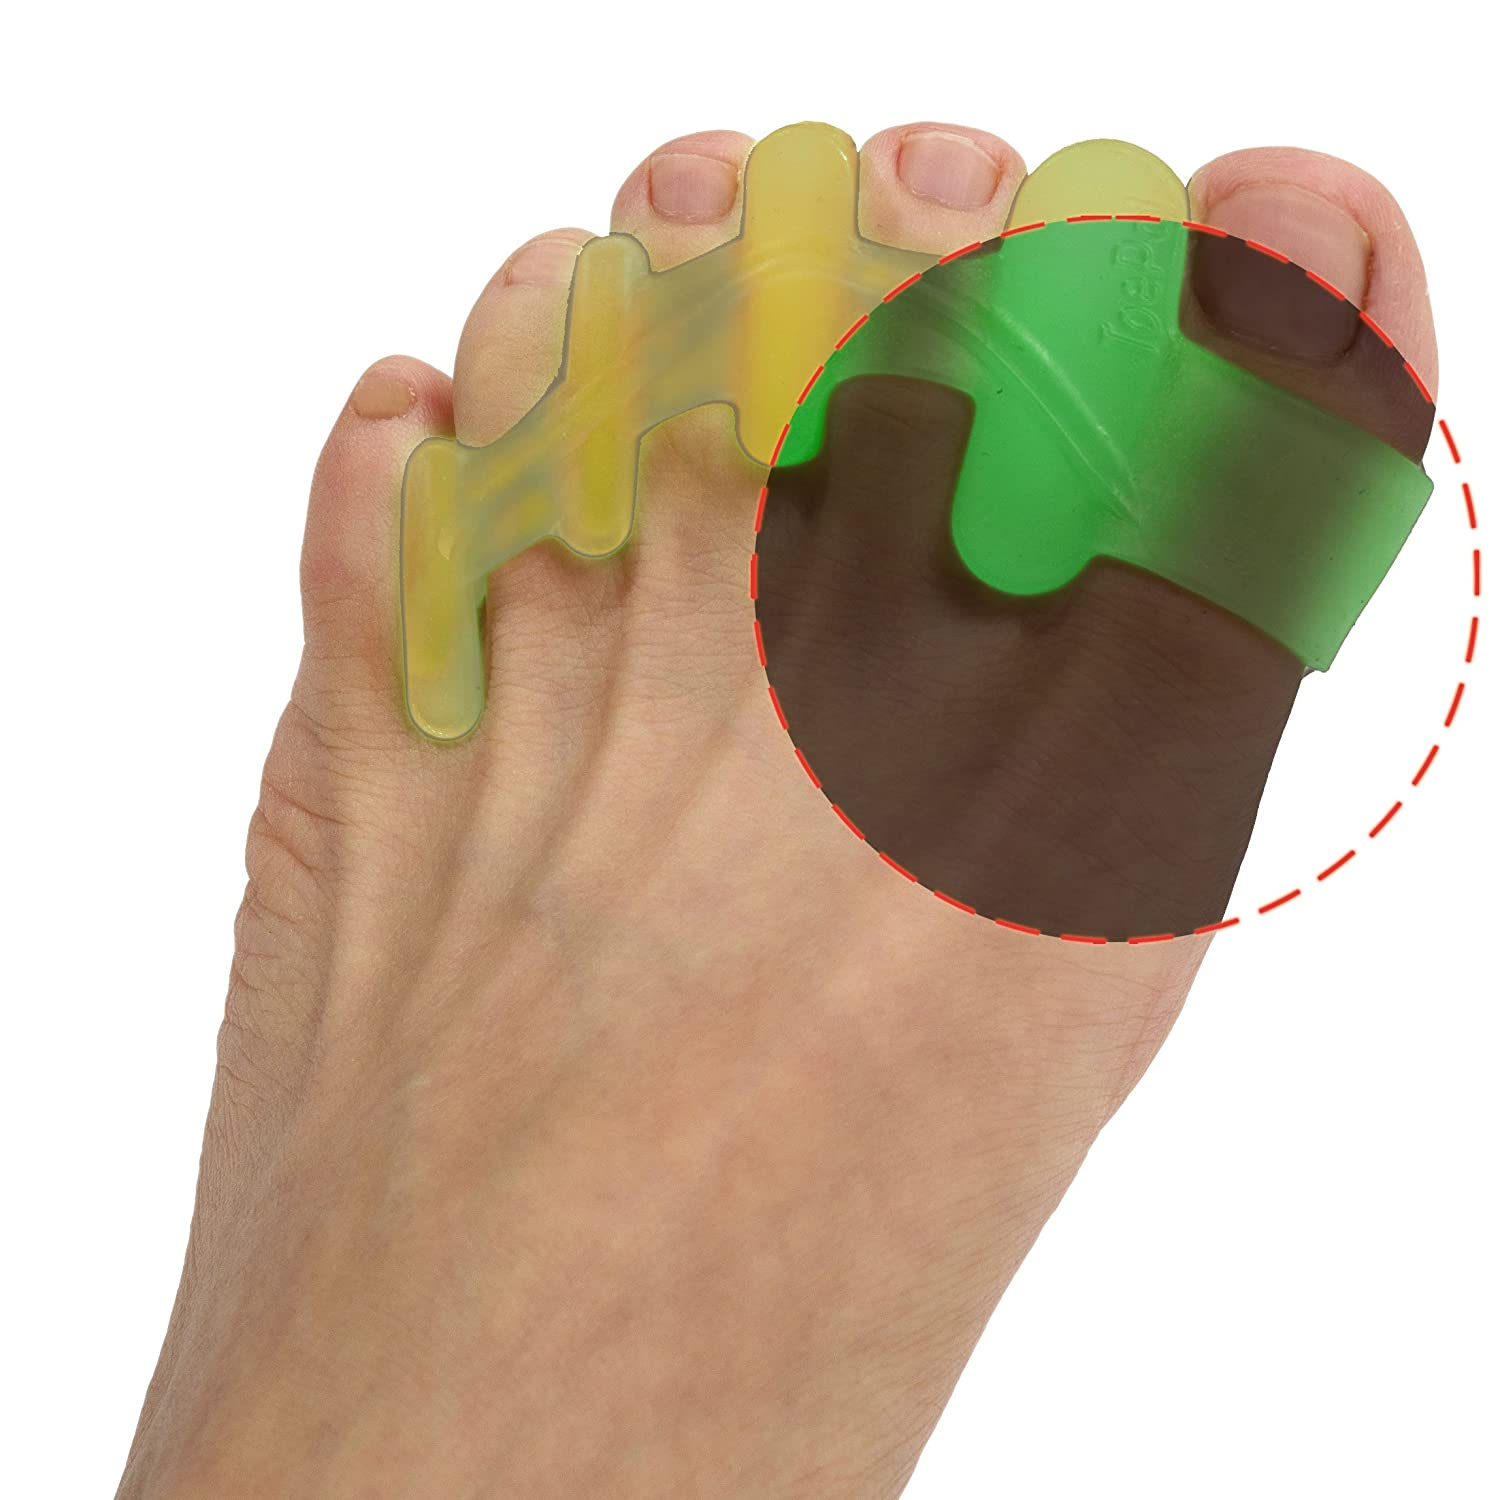 ToePal: Fluorescent Toe Separators and Gel Toe Spacers for Yoga, Toe Stretchers and Toe Straightener for...